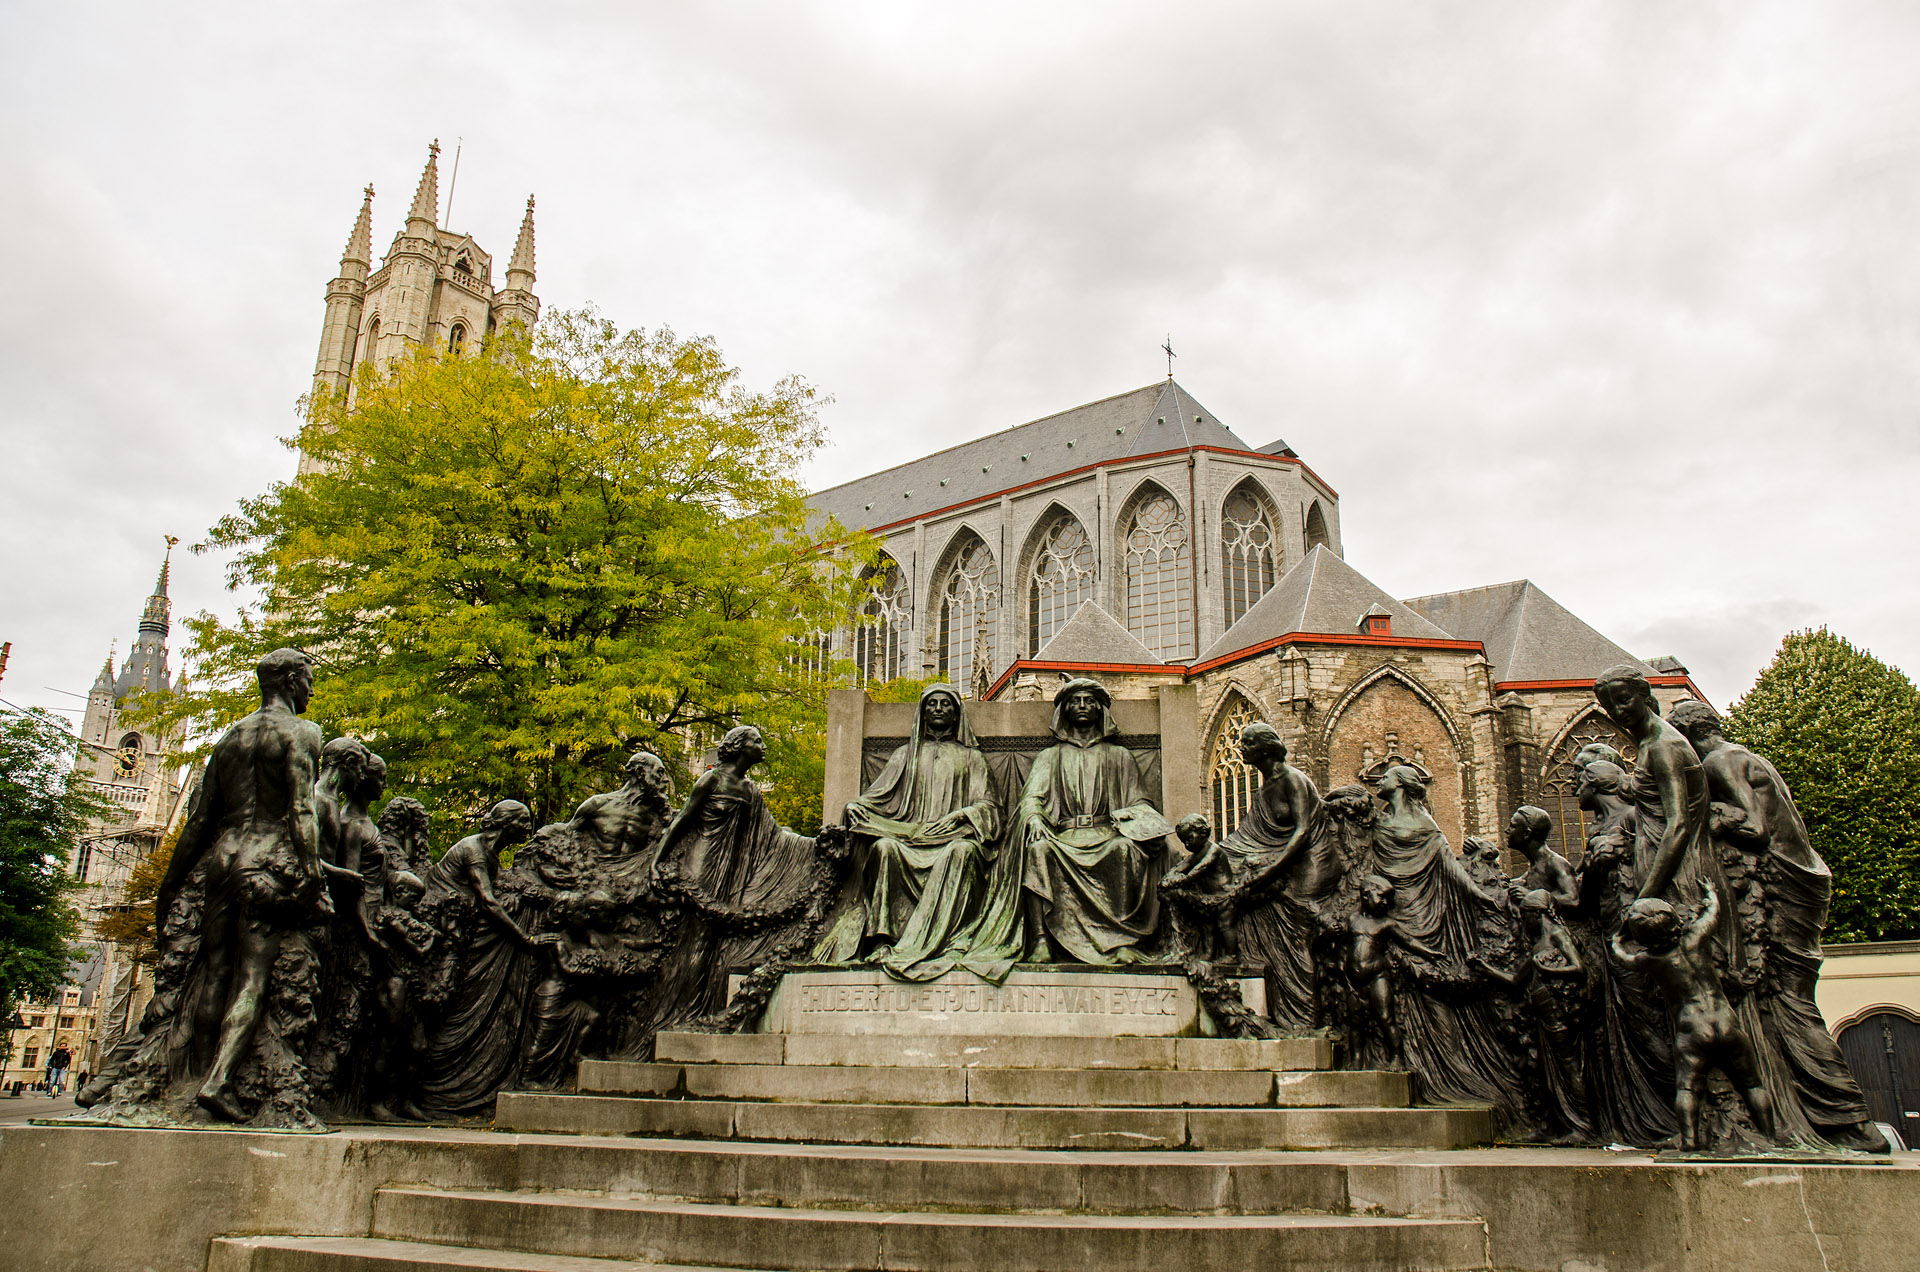 Monument to the Brothers Van Eyck